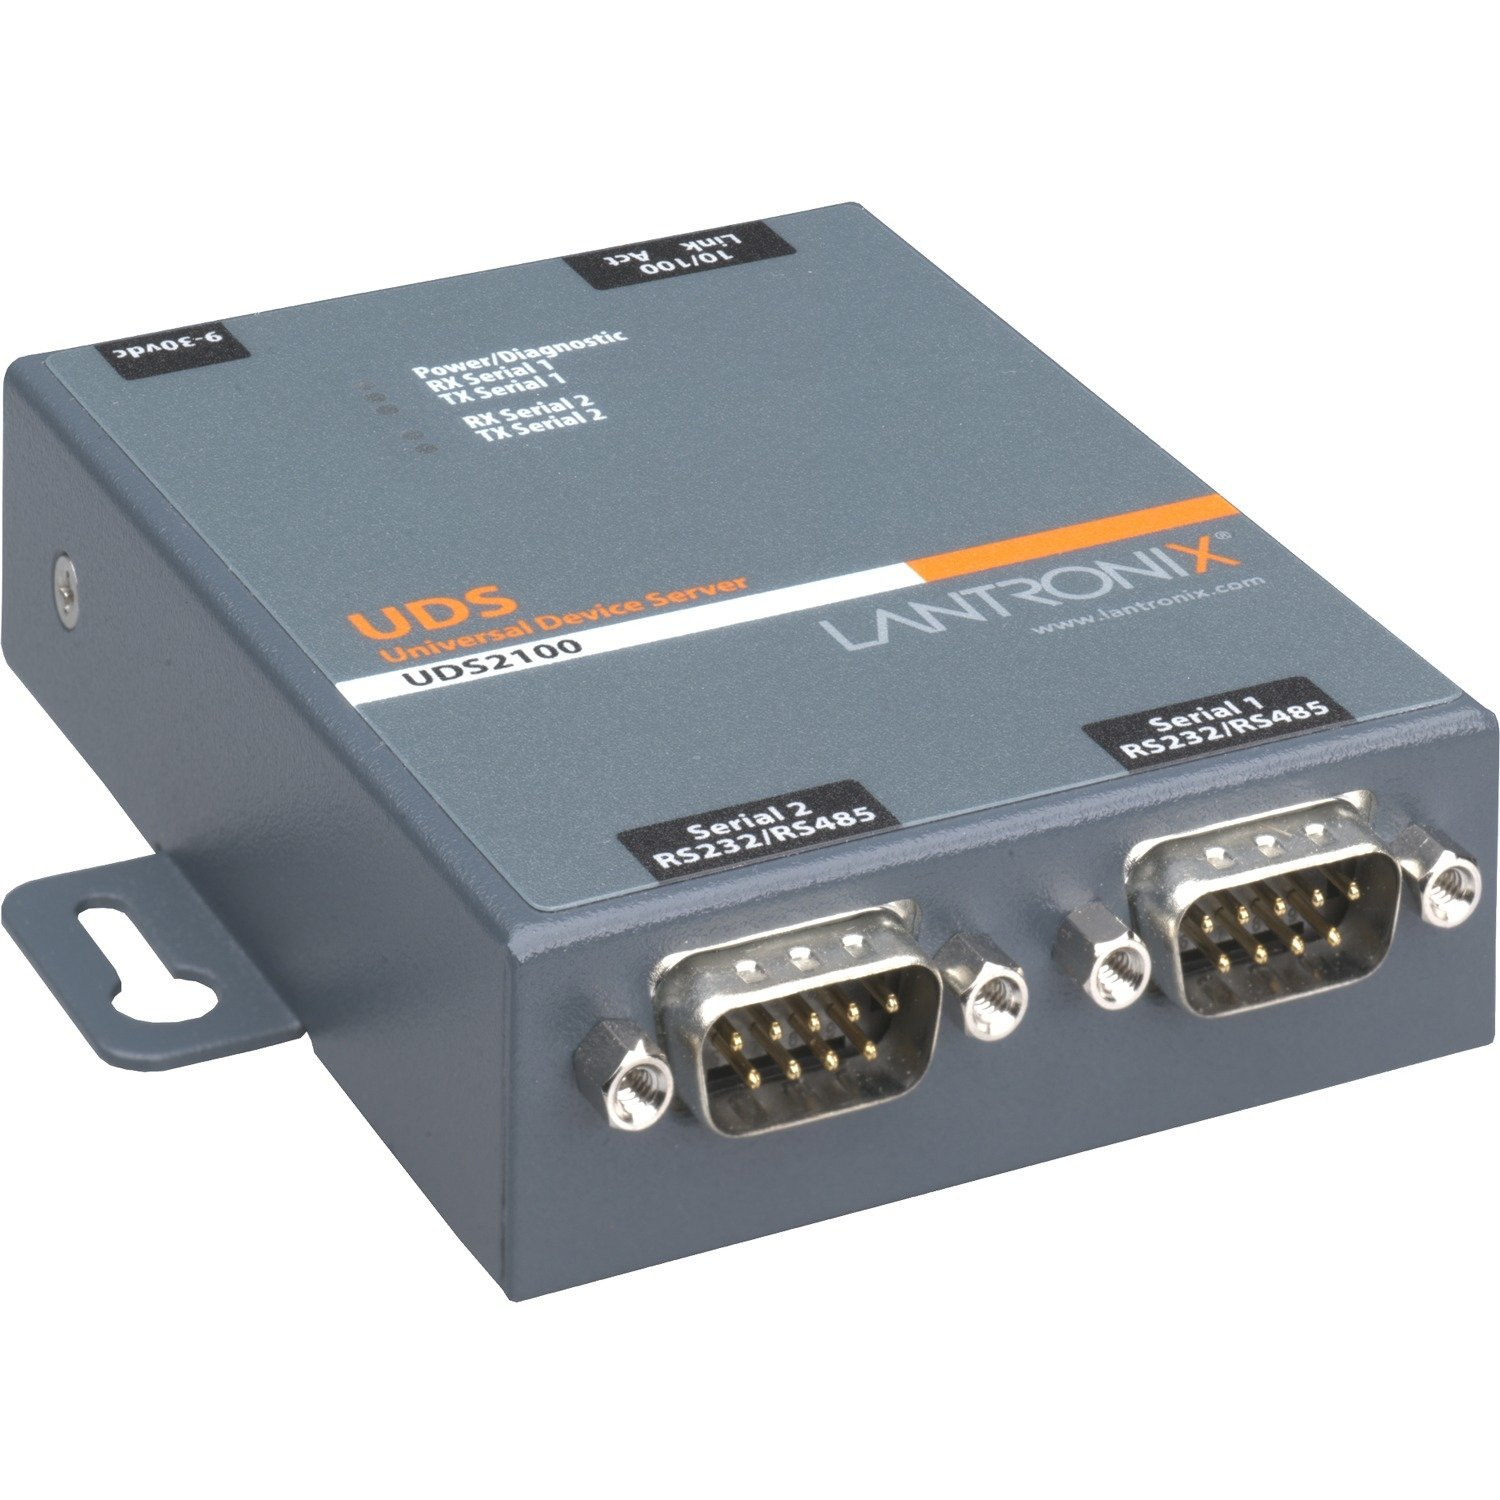 LANTRONIX DEVICE NETWORKING UD2100001-01 UDS2100 DEVICE SERVER